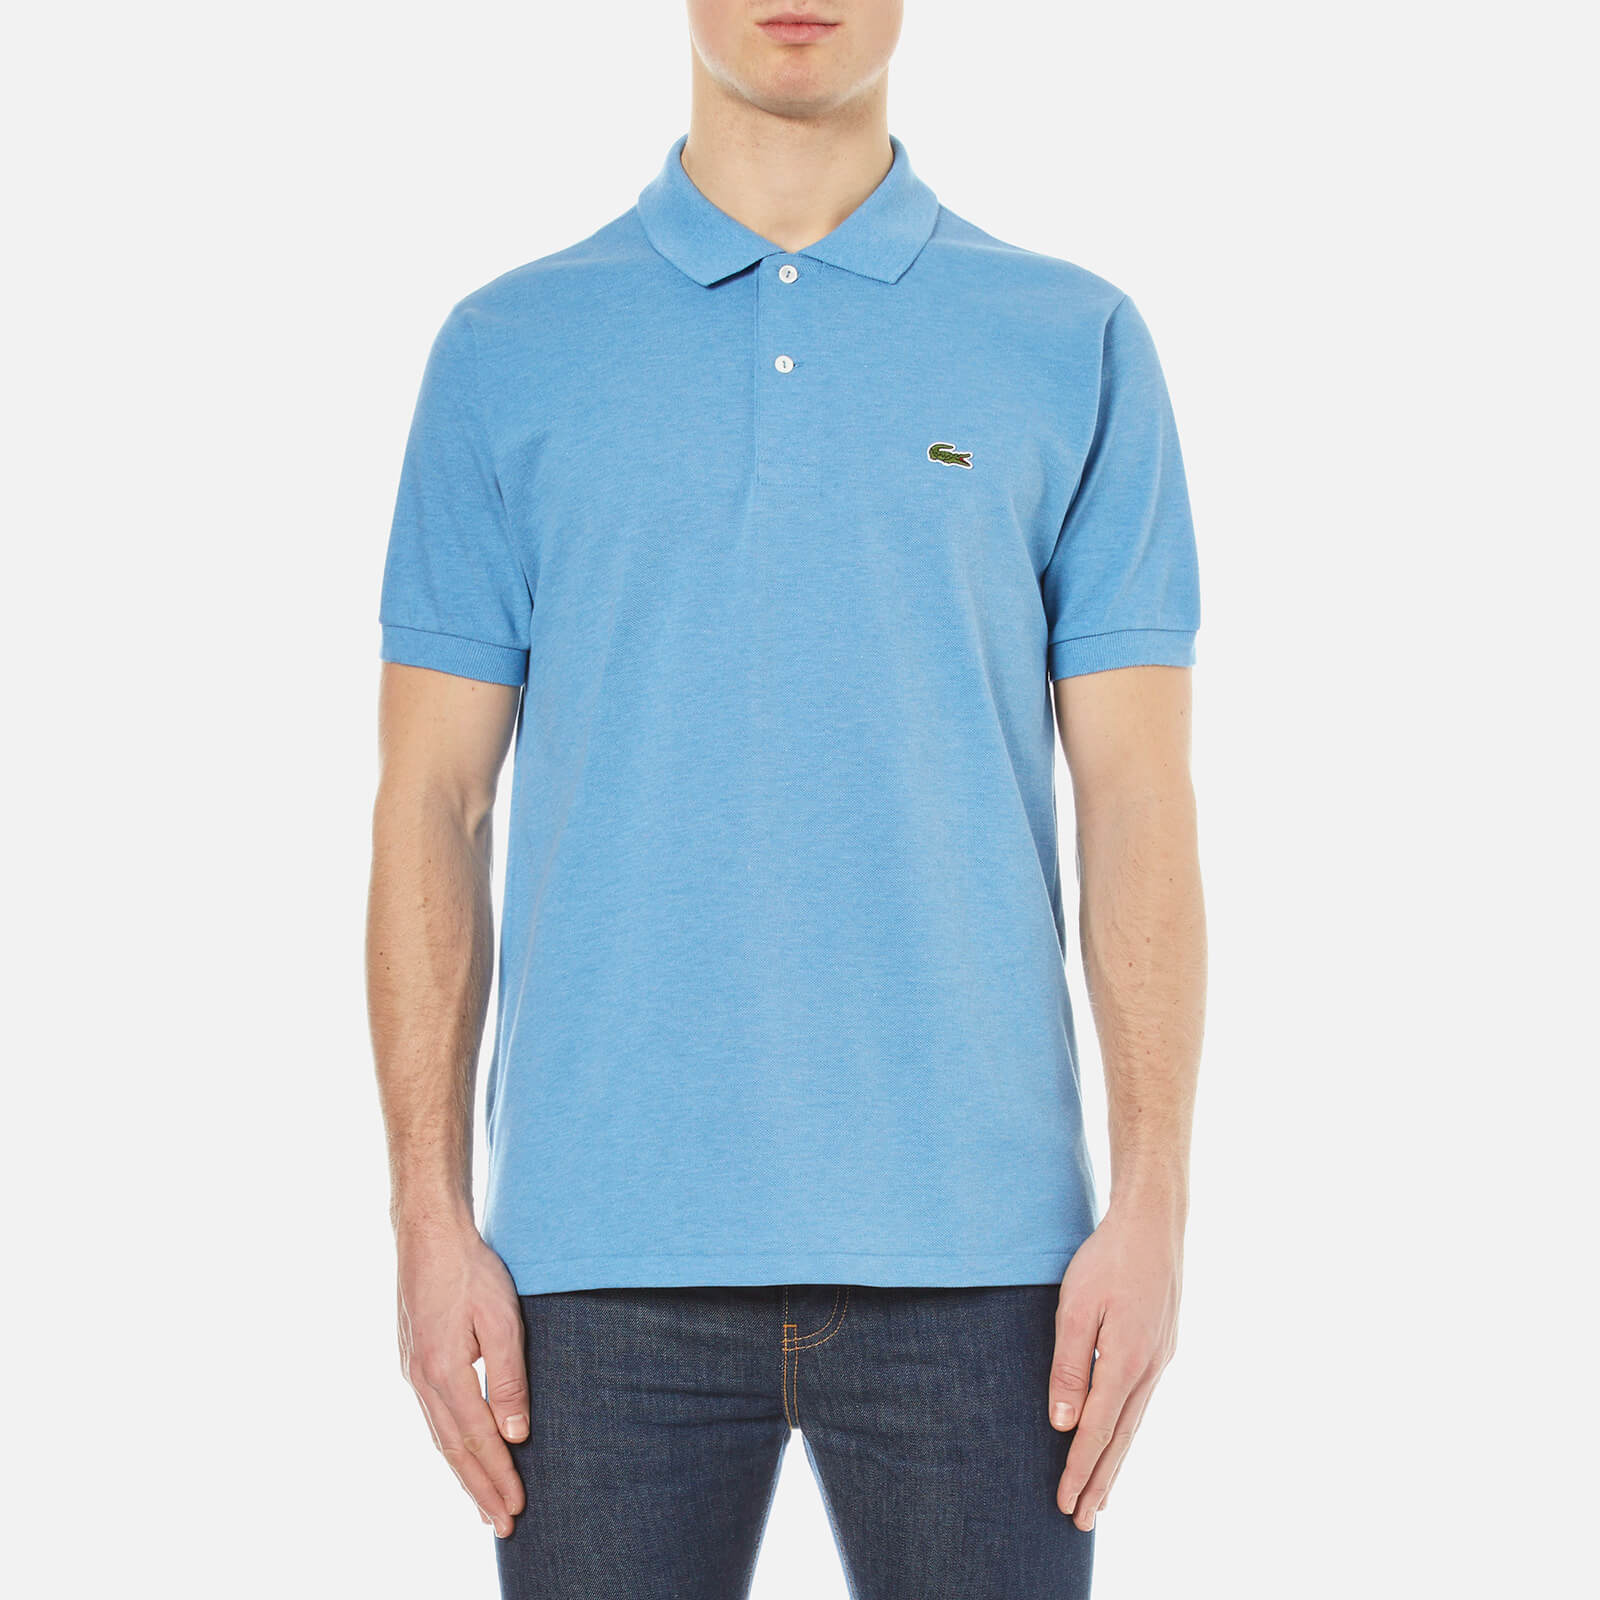 30a8ad90a Lacoste Men's Short Sleeve Pique Polo Shirt - Horizon Blue Chine - Free UK  Delivery over £50